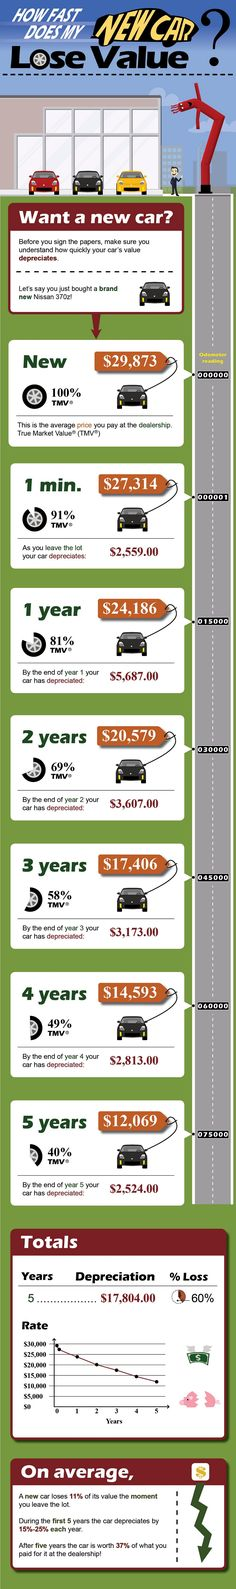 Buying new car – Beware of its value decay  Huge pricing negotiations, brand loyalty and many such issues are related to it. The infographic depicts how value of a new car starts decreasing, the moment you leave the showroom. On an average, it is seen decreasing by 10% every year and falls to 89% as soon as you leave the lot. If you are willing to sell the car 5 years later, you would be at around 60% loss